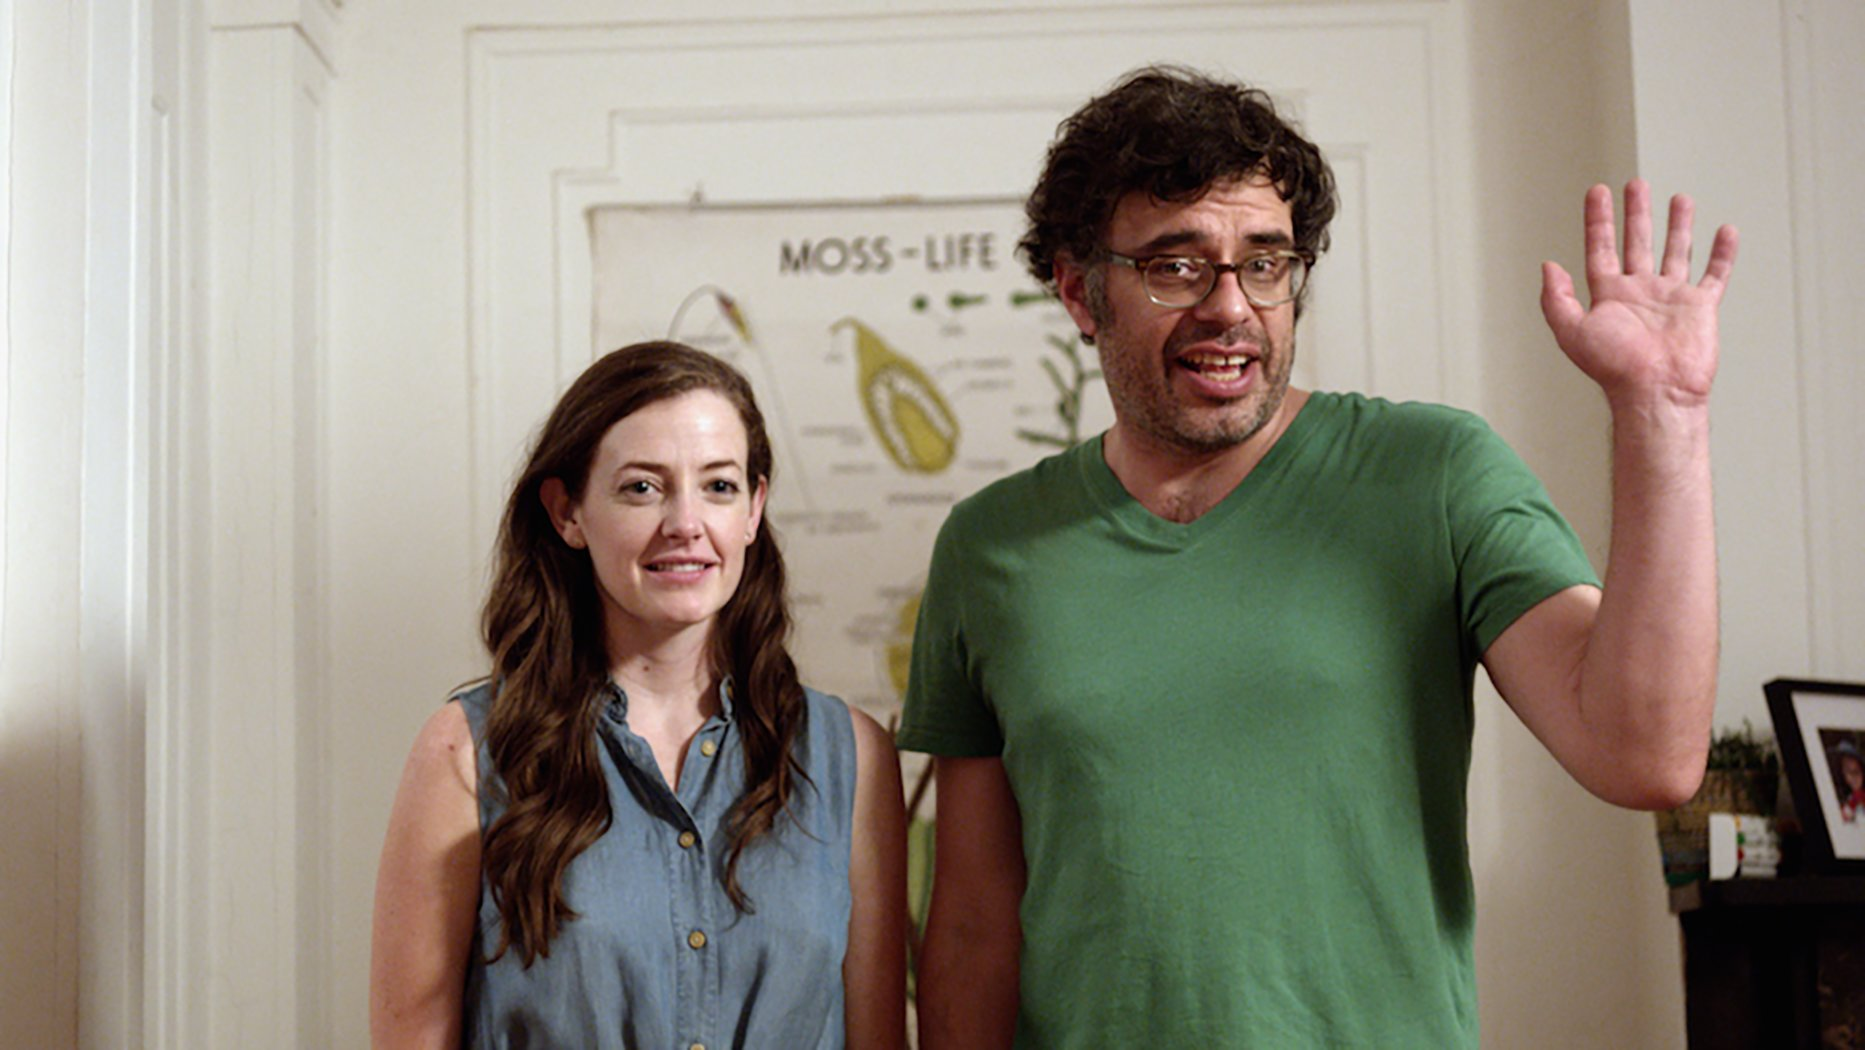 people places things jemaine clement1 Ranking: Chicago Critics Film Festival 2015 From Worst to Best